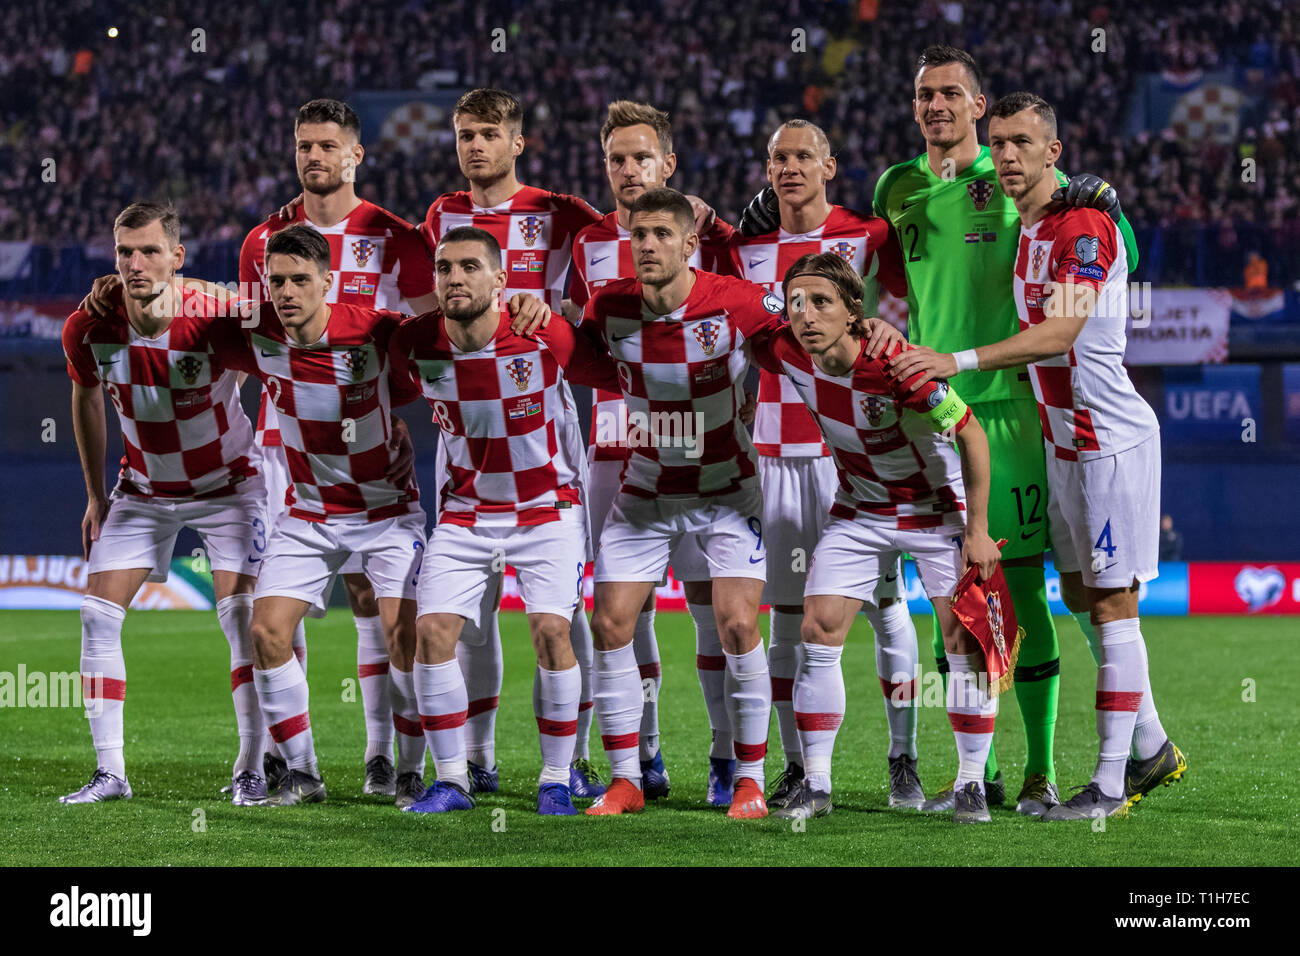 Azerbaijan National Team Stockfotos Und Bilder Kaufen Alamy